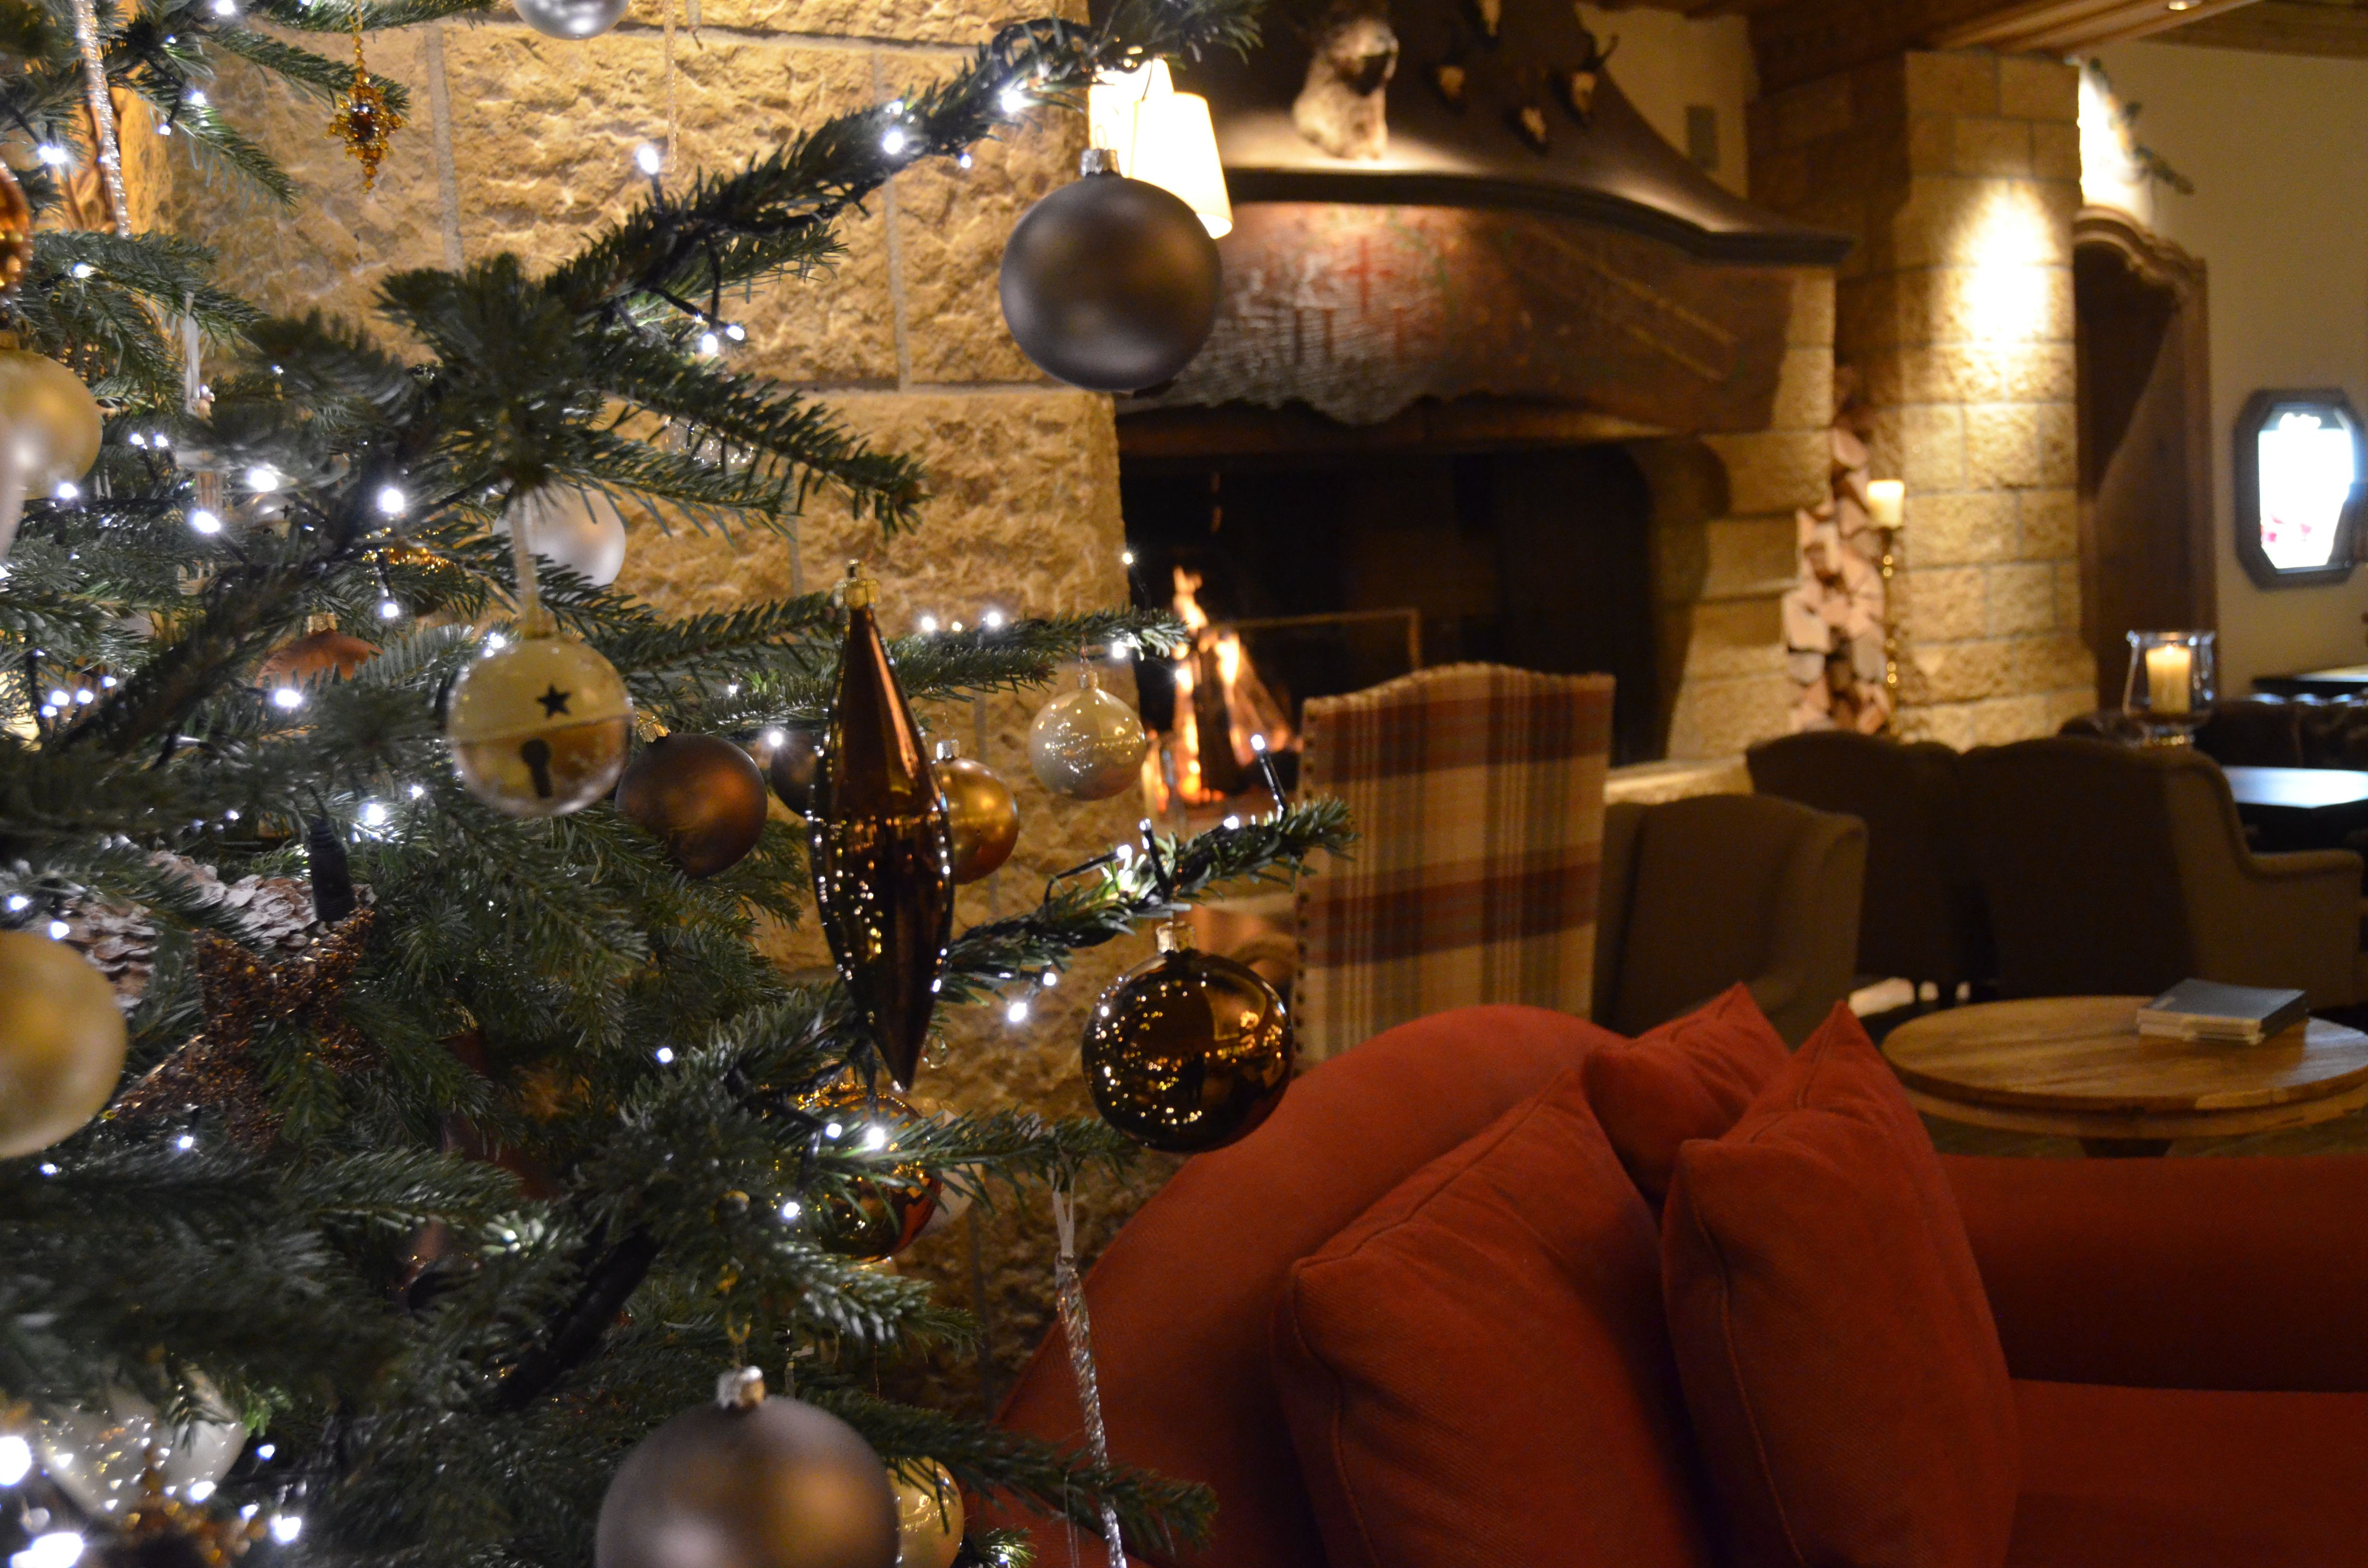 A warming night cap, an open fire and the crackle of burning wood - what could be better?